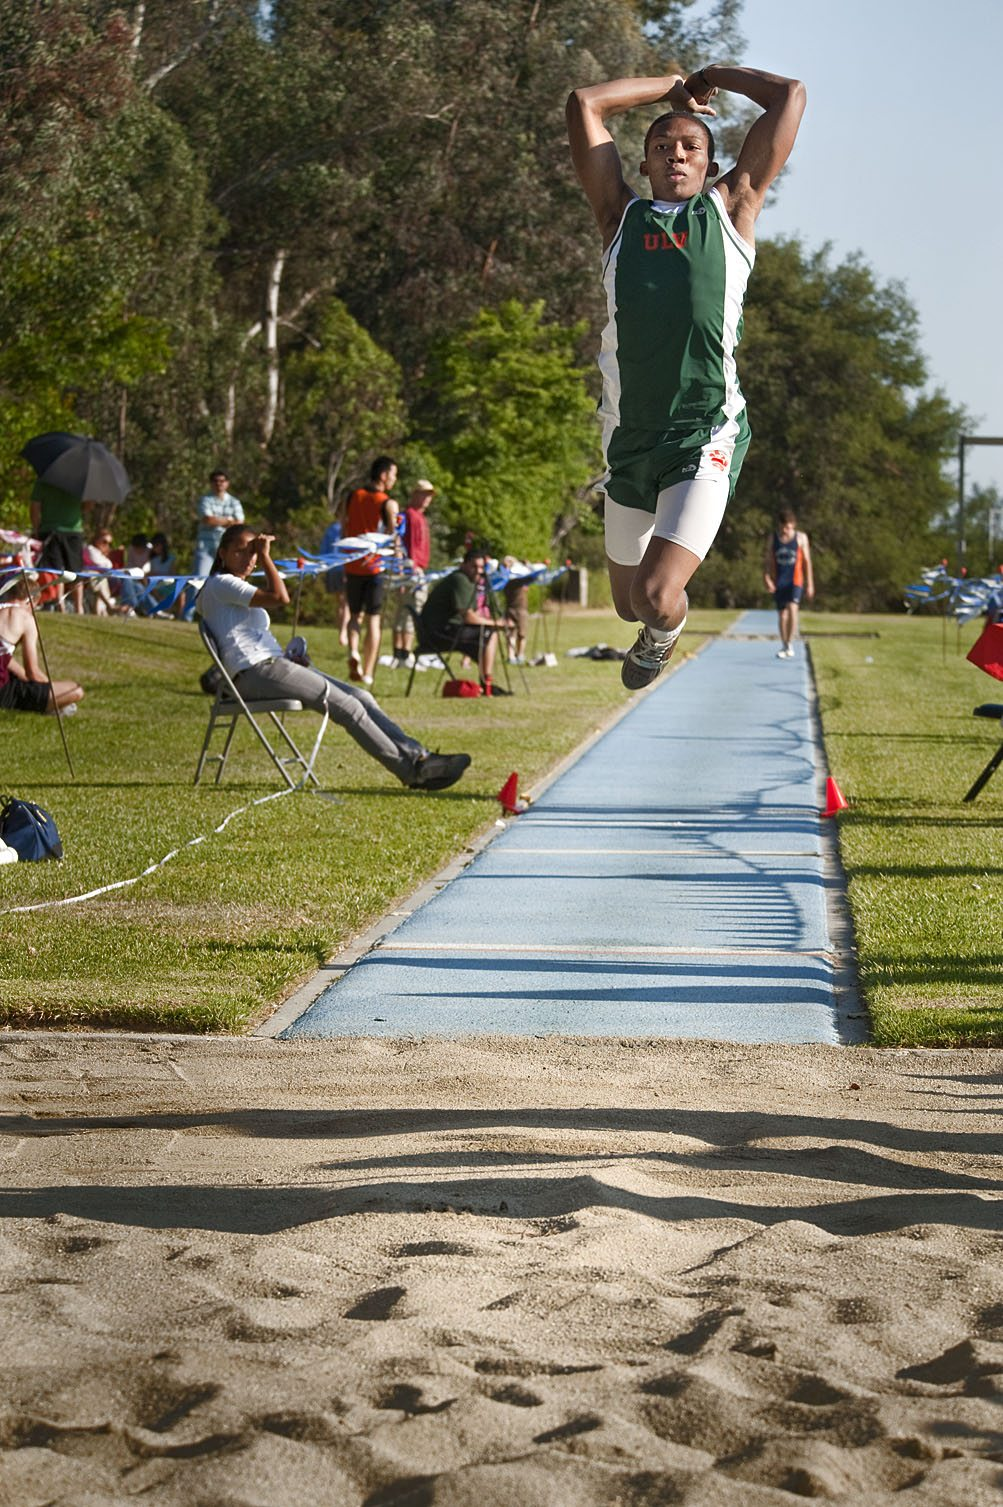 Freshman Paul Turner, who hails from Indio, placed first in the men's long jump and triple jump at the SCIAC Championship meet on April 30 and May 1 at Pomona College in Claremont. The men's team took third place overall. Its next event is Saturday at the Occidental Invitational./photo by Nicholas Mitzenmacher